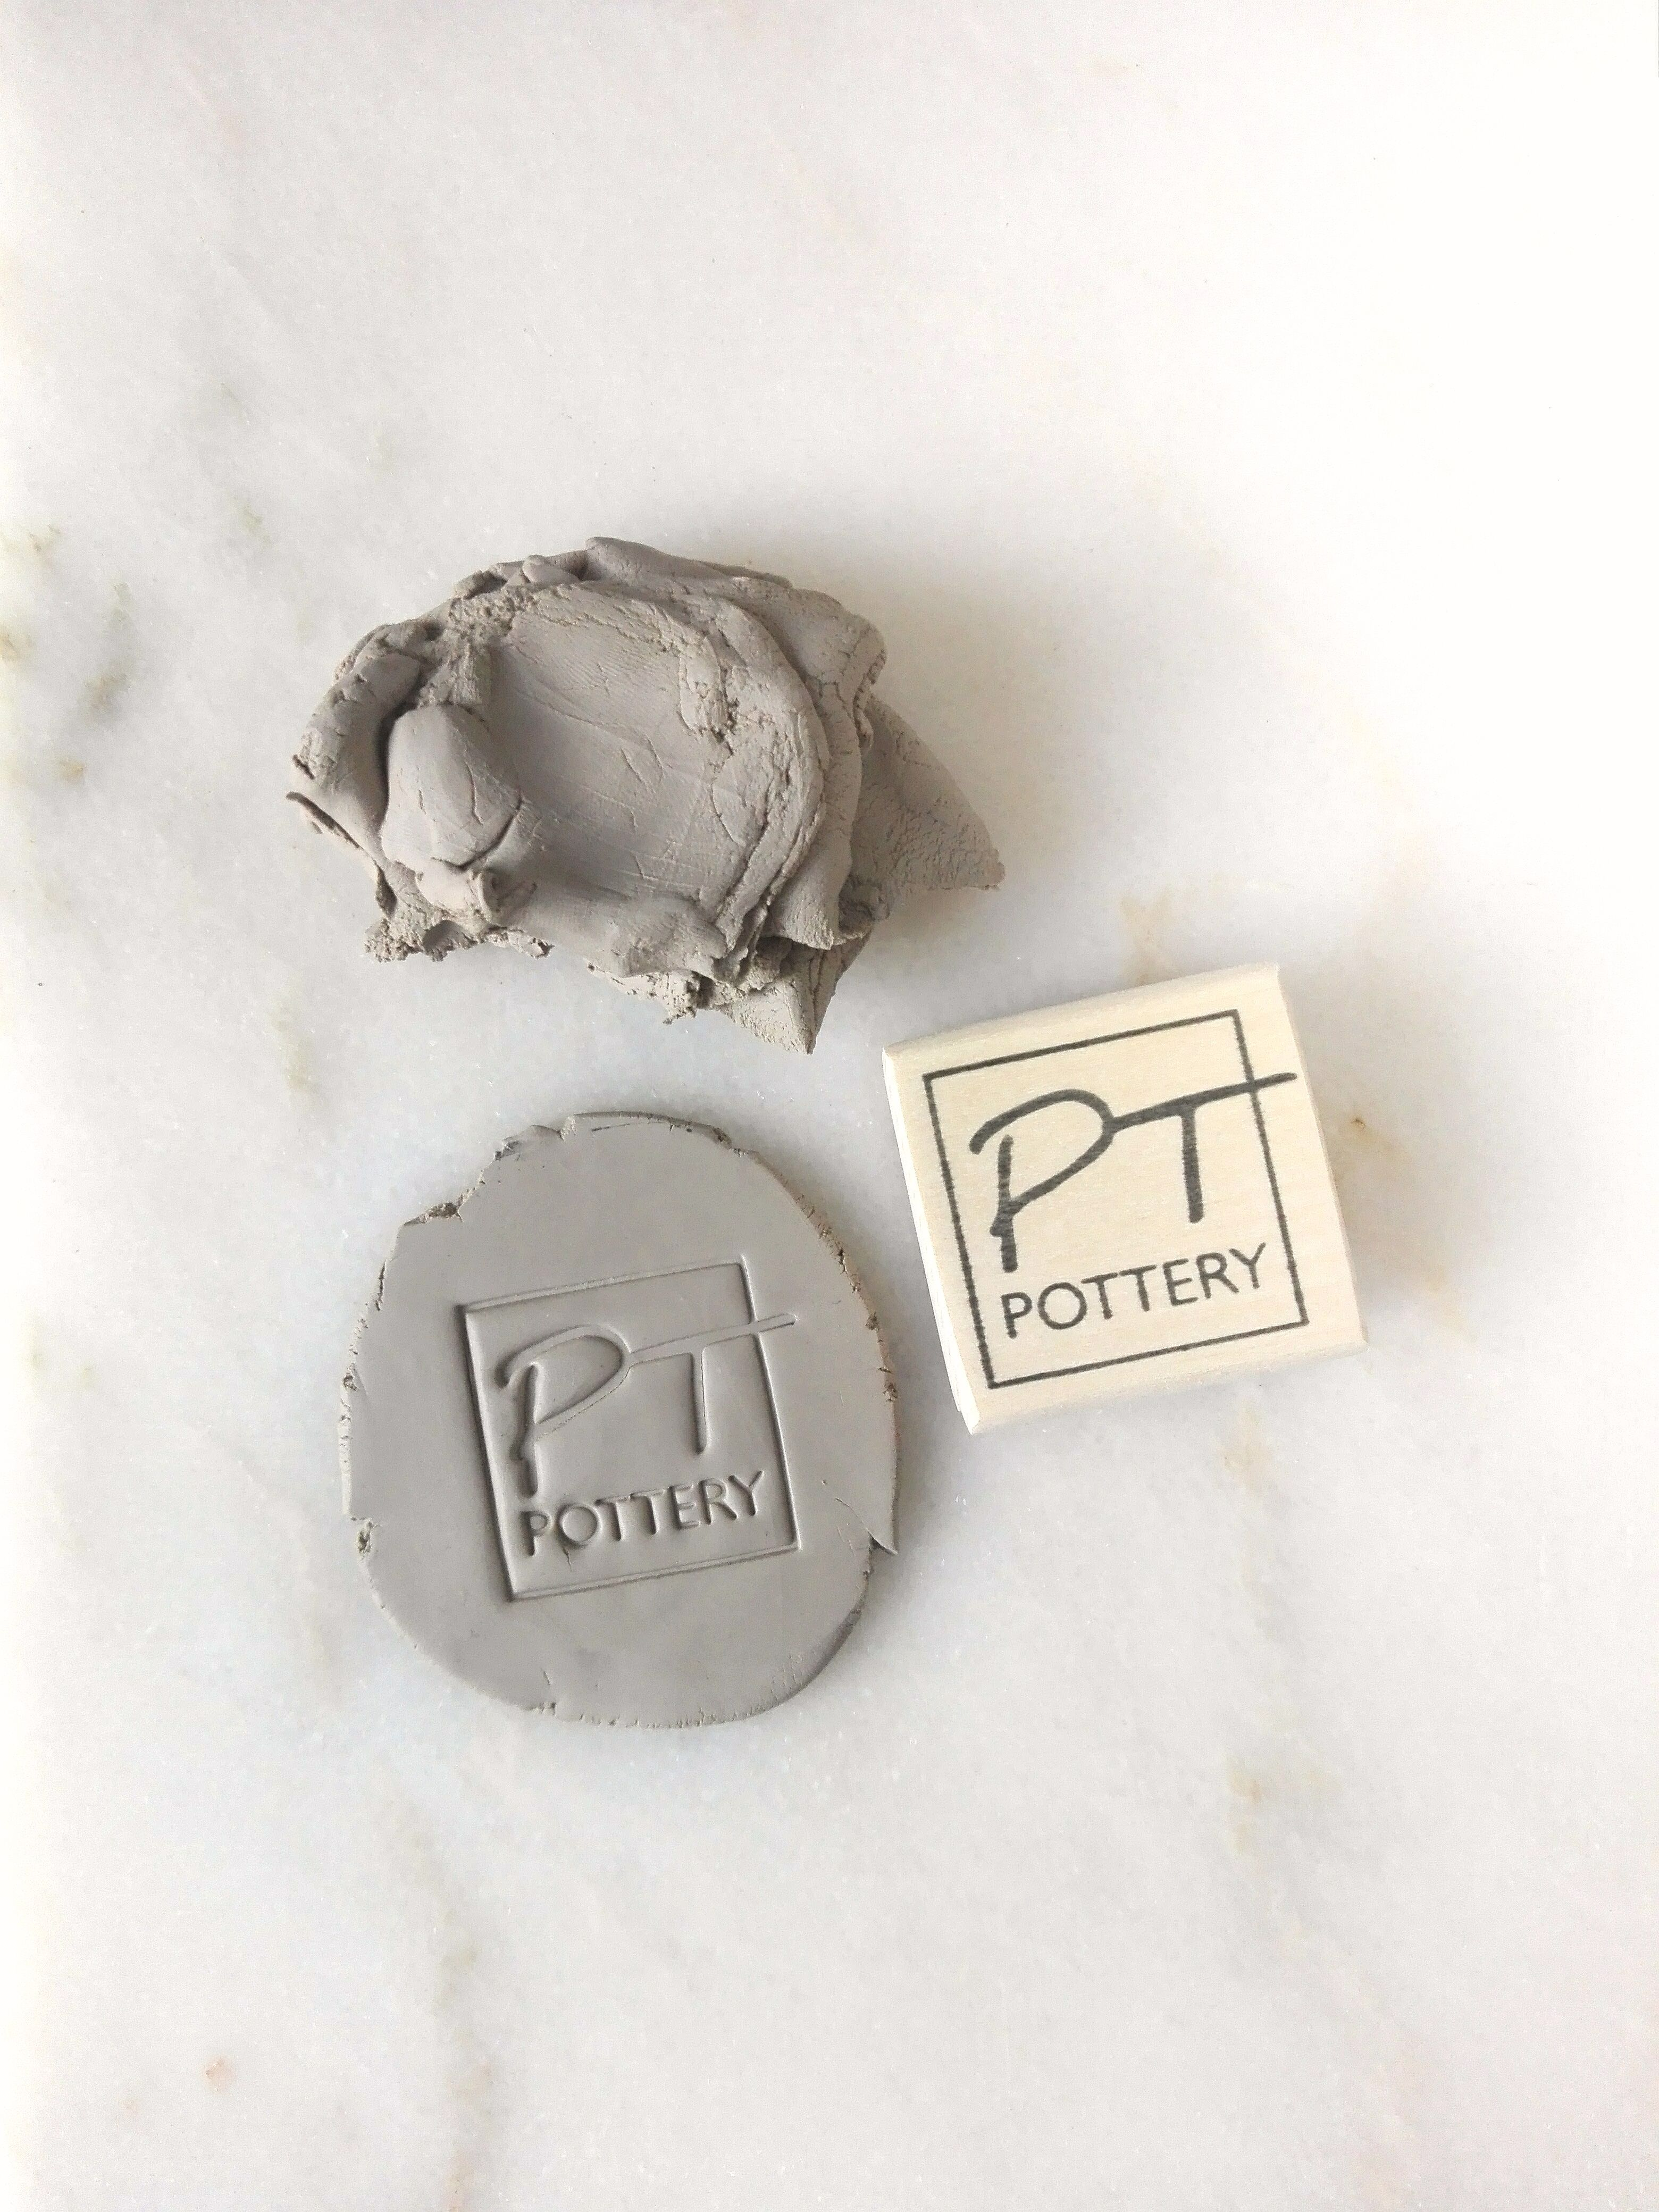 Pottery Custom Stamp In 2020 Pottery Custom Stamps Stamp